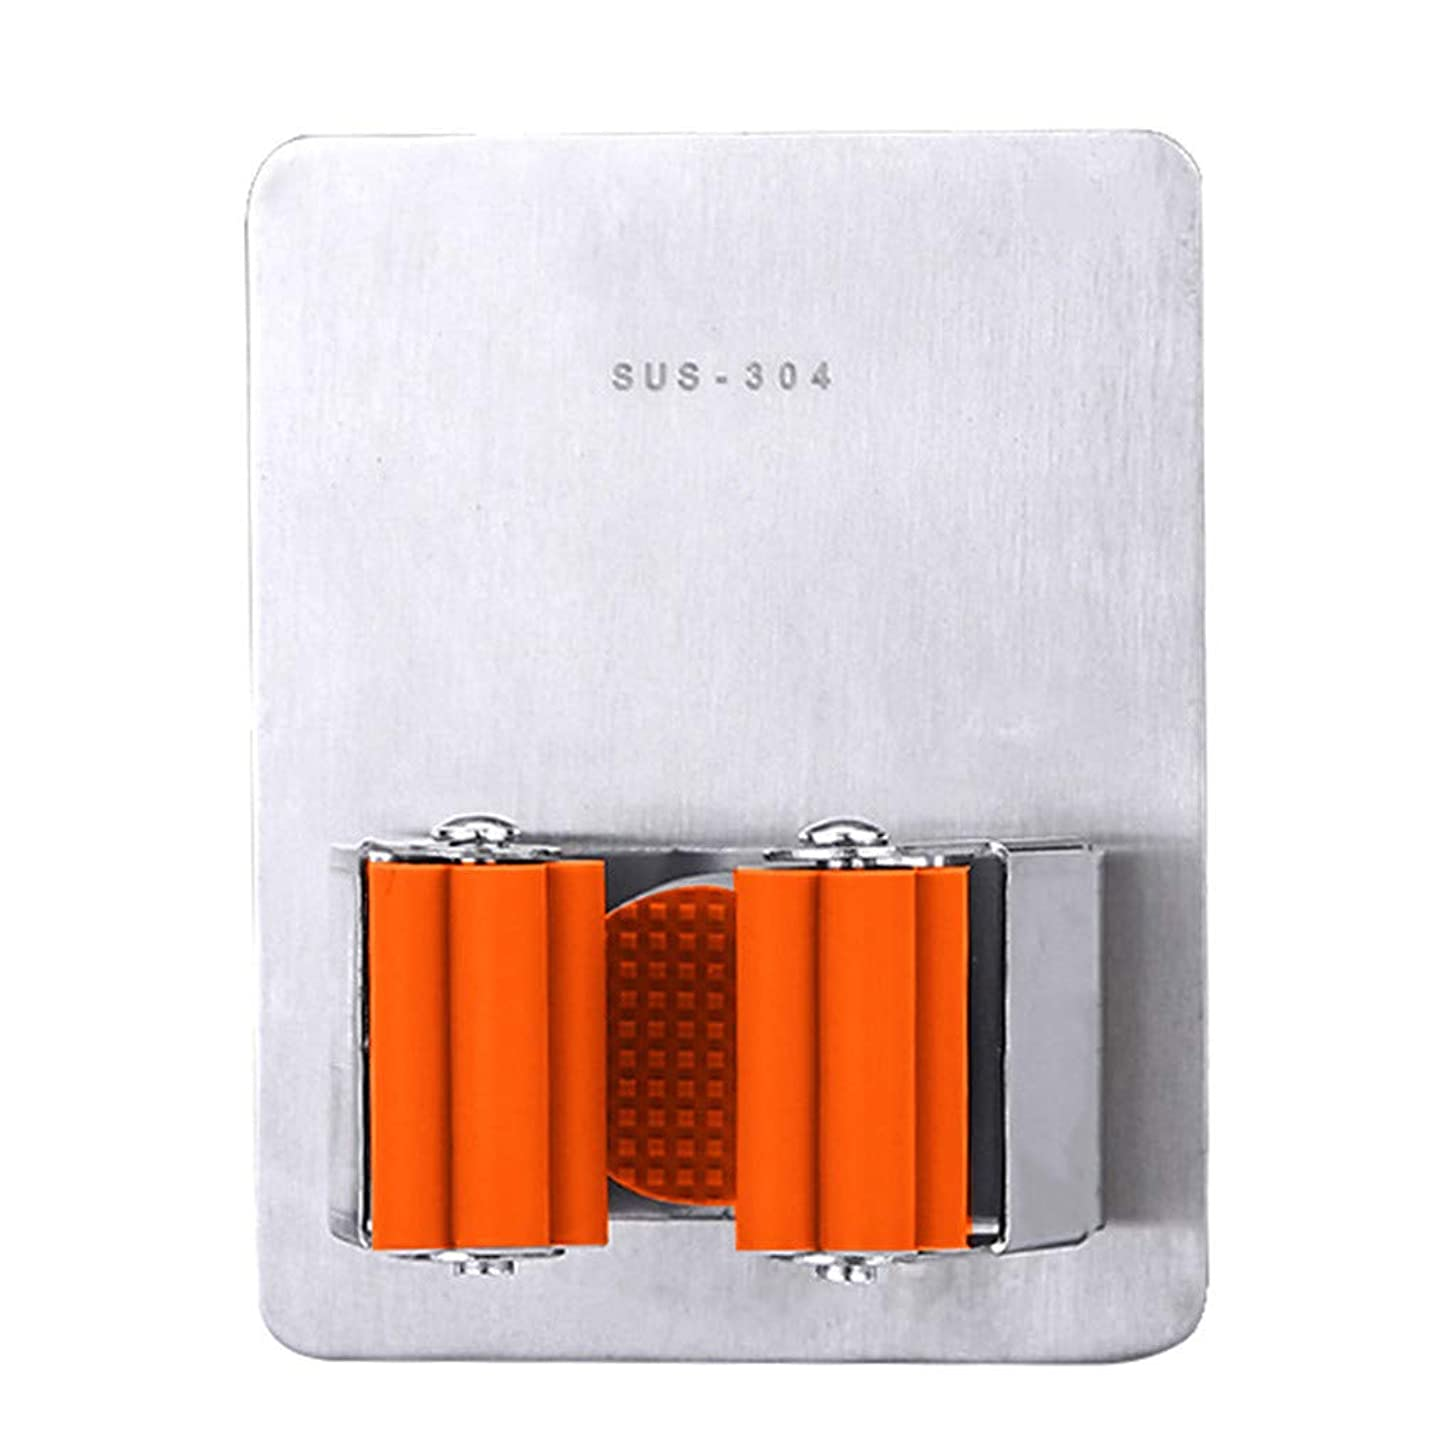 Wall Mounted Broom Mop Holder Adhesive Stainless Steel Mop and Broom Holder Organizer Brush Broom Hanger Wall Mount Utility Rack for Mops and Brooms 1PC (Orange)